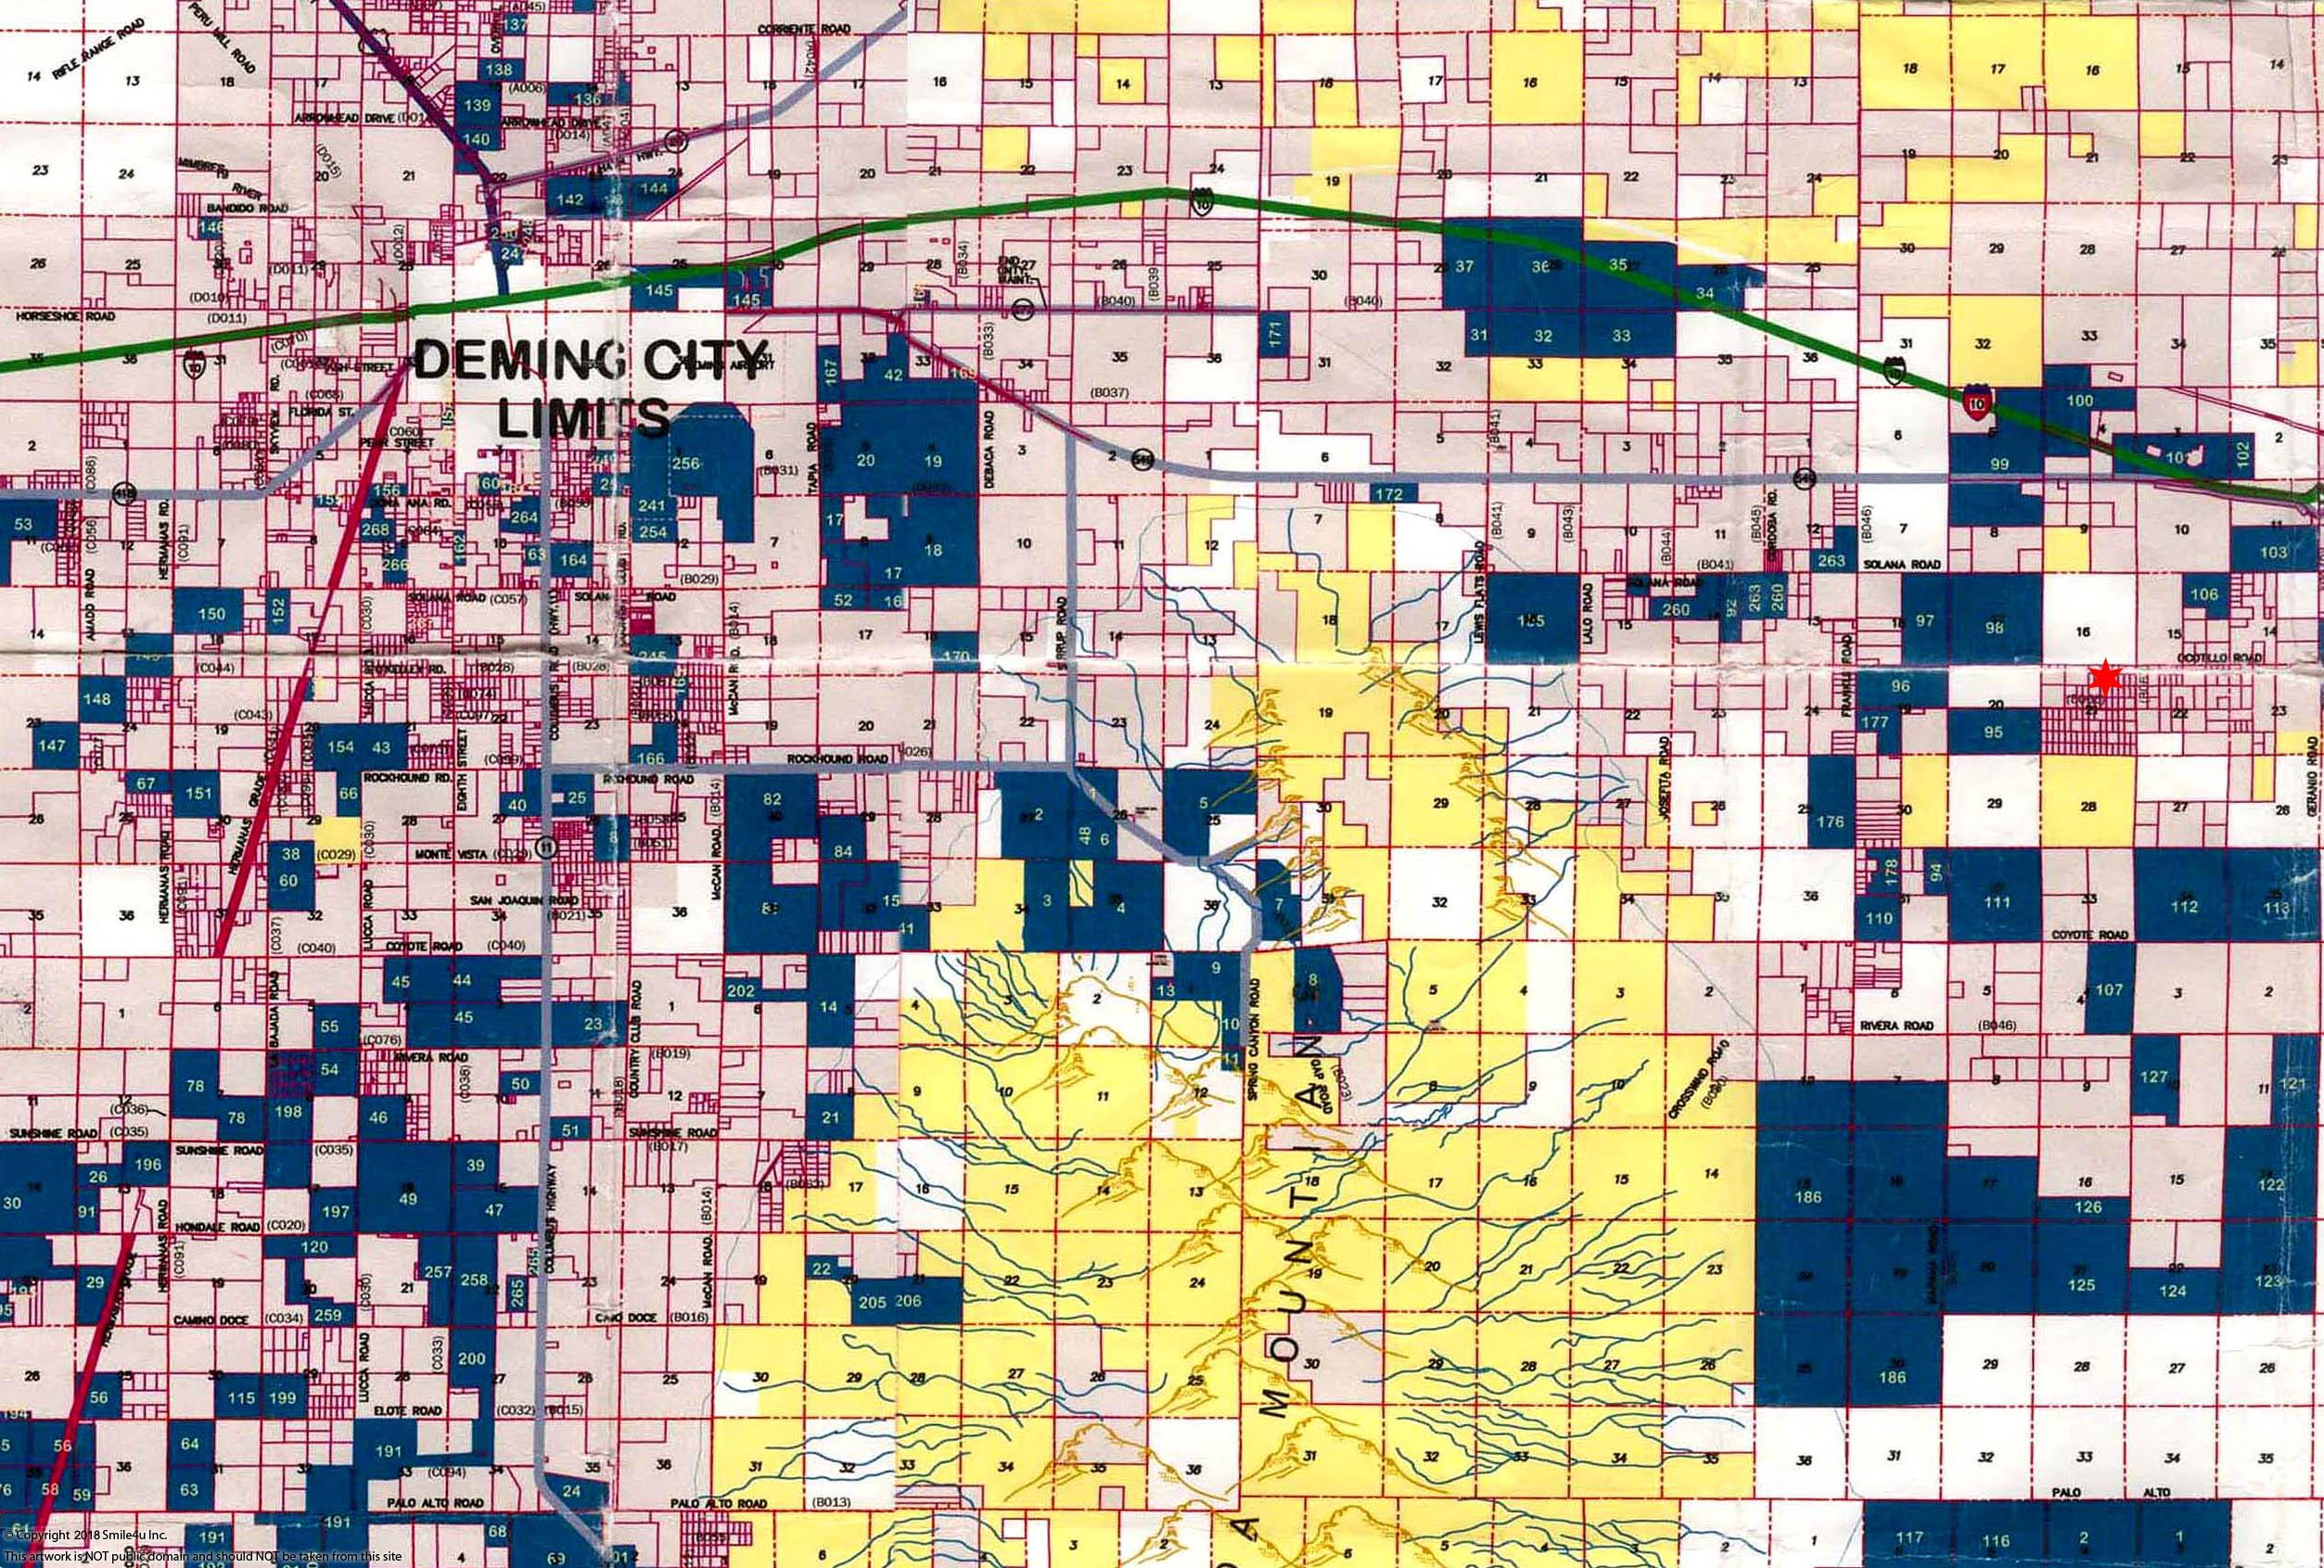 842853_watermarked_Deming Ranchettes Subdivision Color Map.jpg